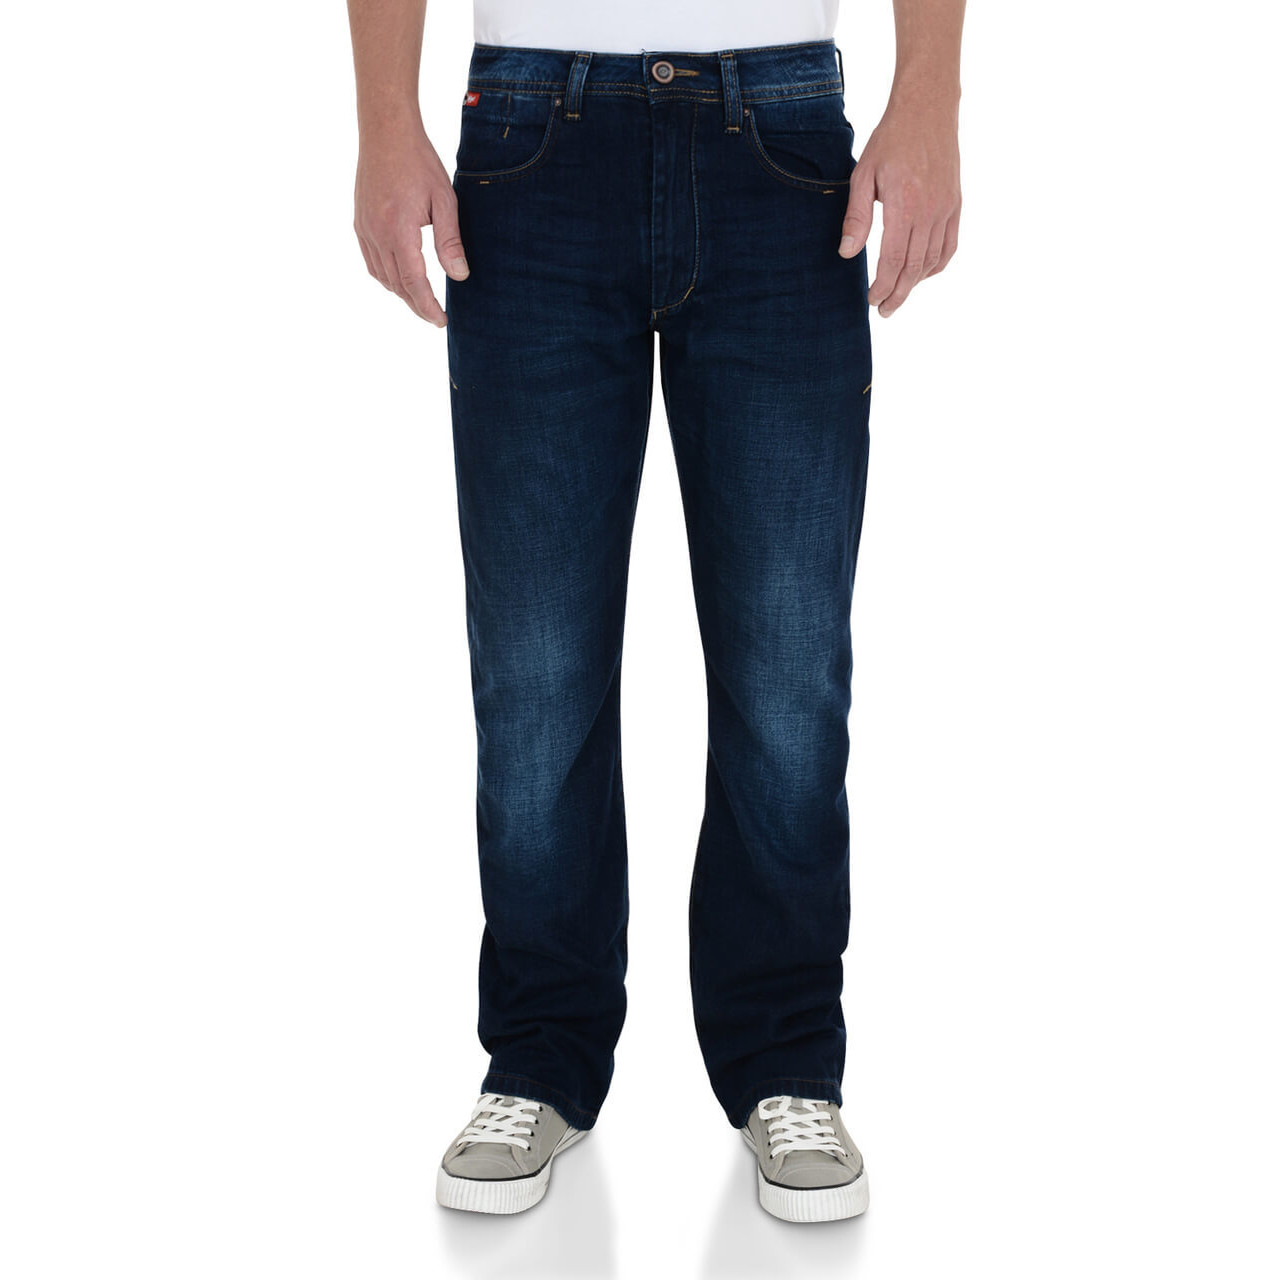 4a0f31c6 Lee Cooper Carter Bootcut Jeans Faded Dark Wash Blue Image. Double tap to  zoom